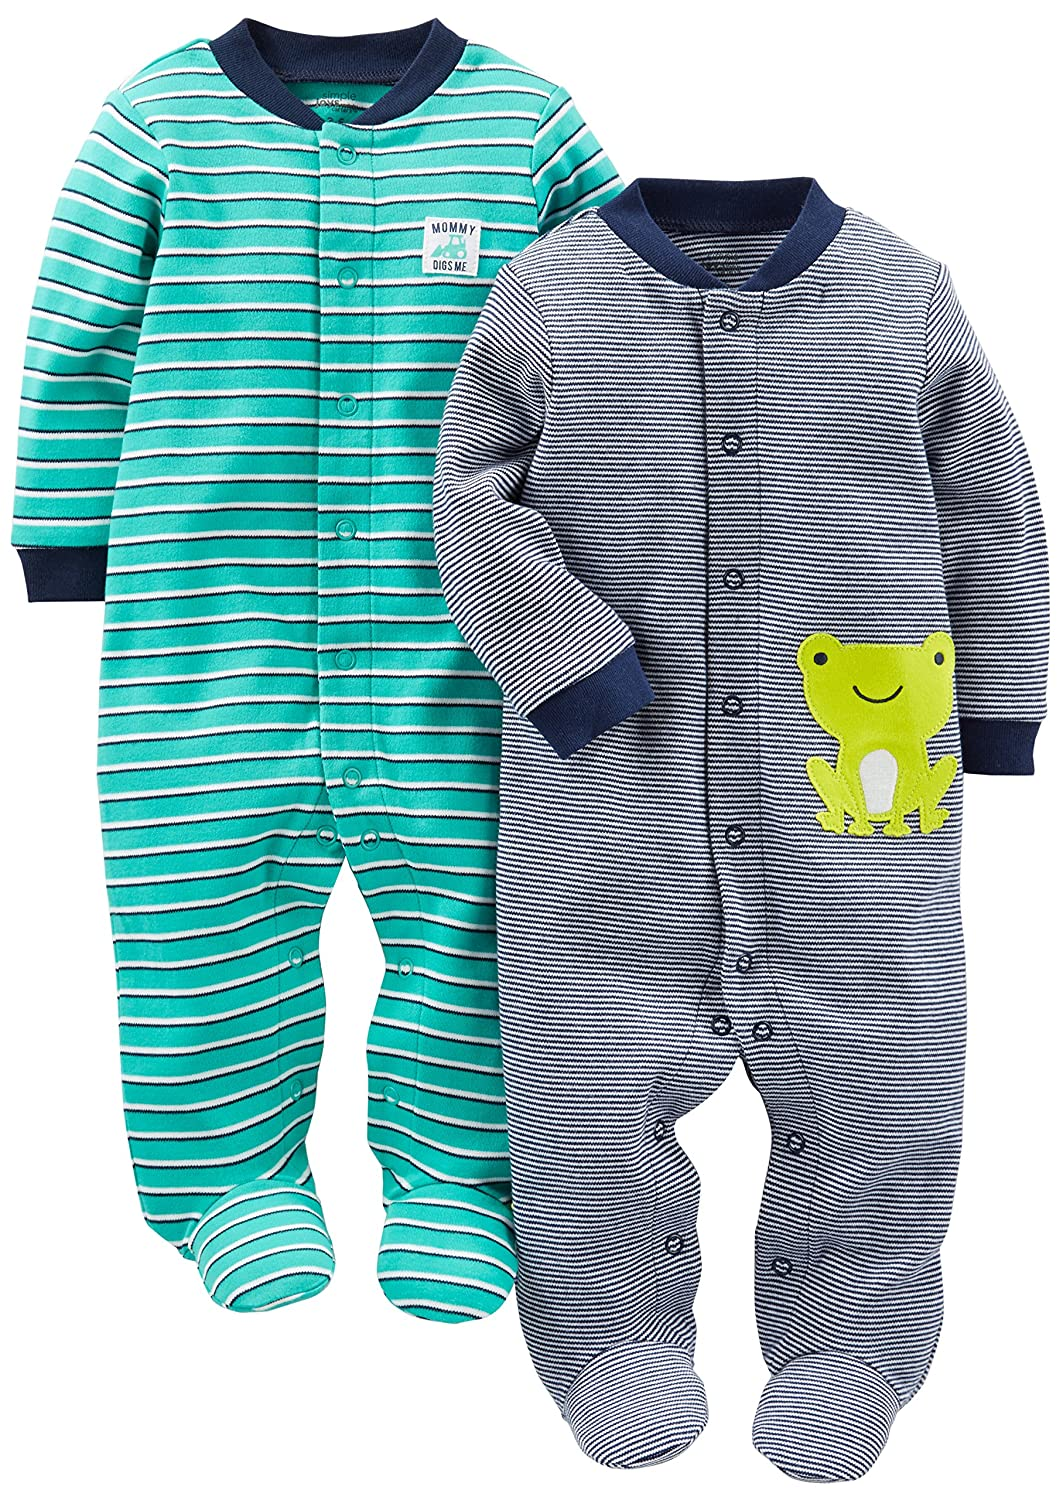 Simple Joys by Carters Baby Boys 2-Pack Cotton Footed Sleep and Play